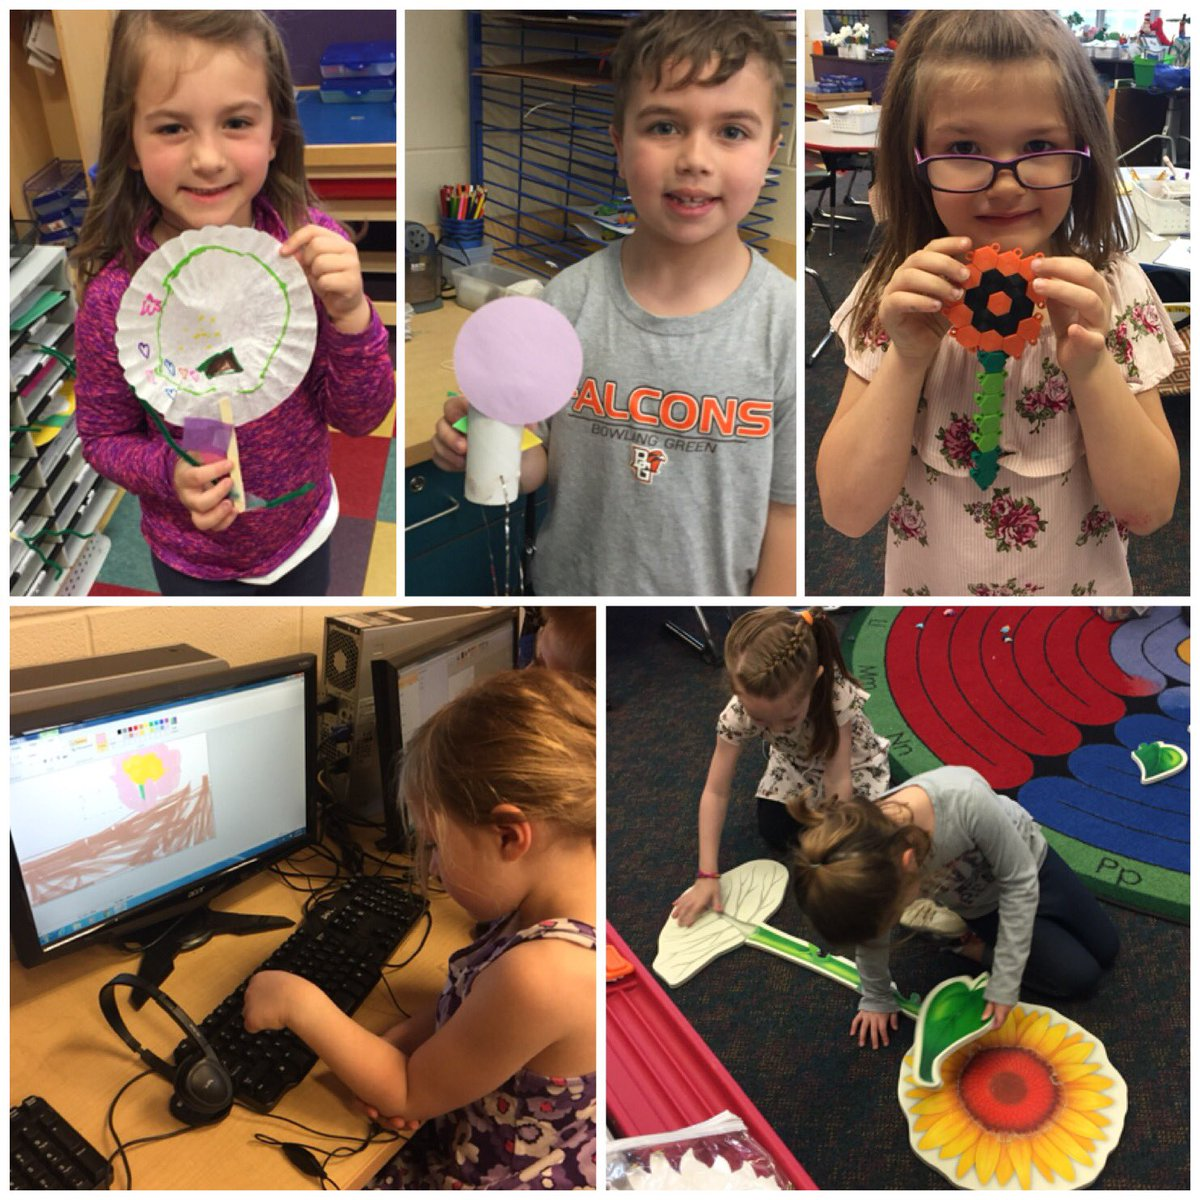 Otsegokindergarten On Twitter Do You Know The Parts Of A Plant We Computer Diagram For Kids Related Showed What By Making Diagrams Using Creating Models Plants Art And Assembling Puzzles